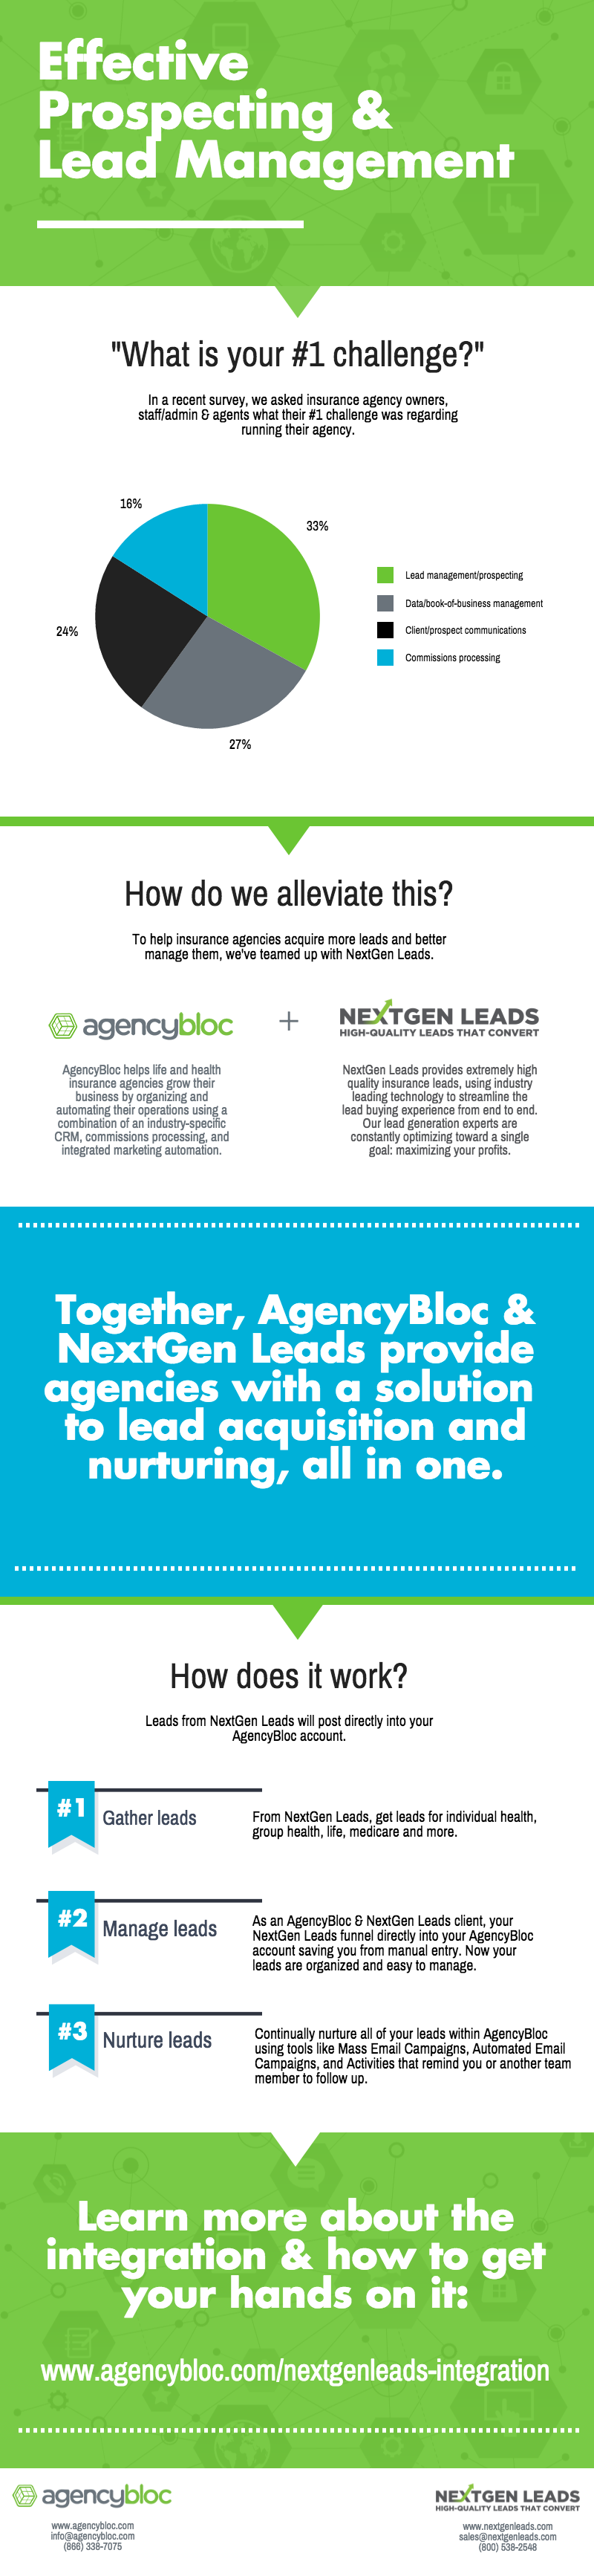 AgencyBloc and NextGen Leads